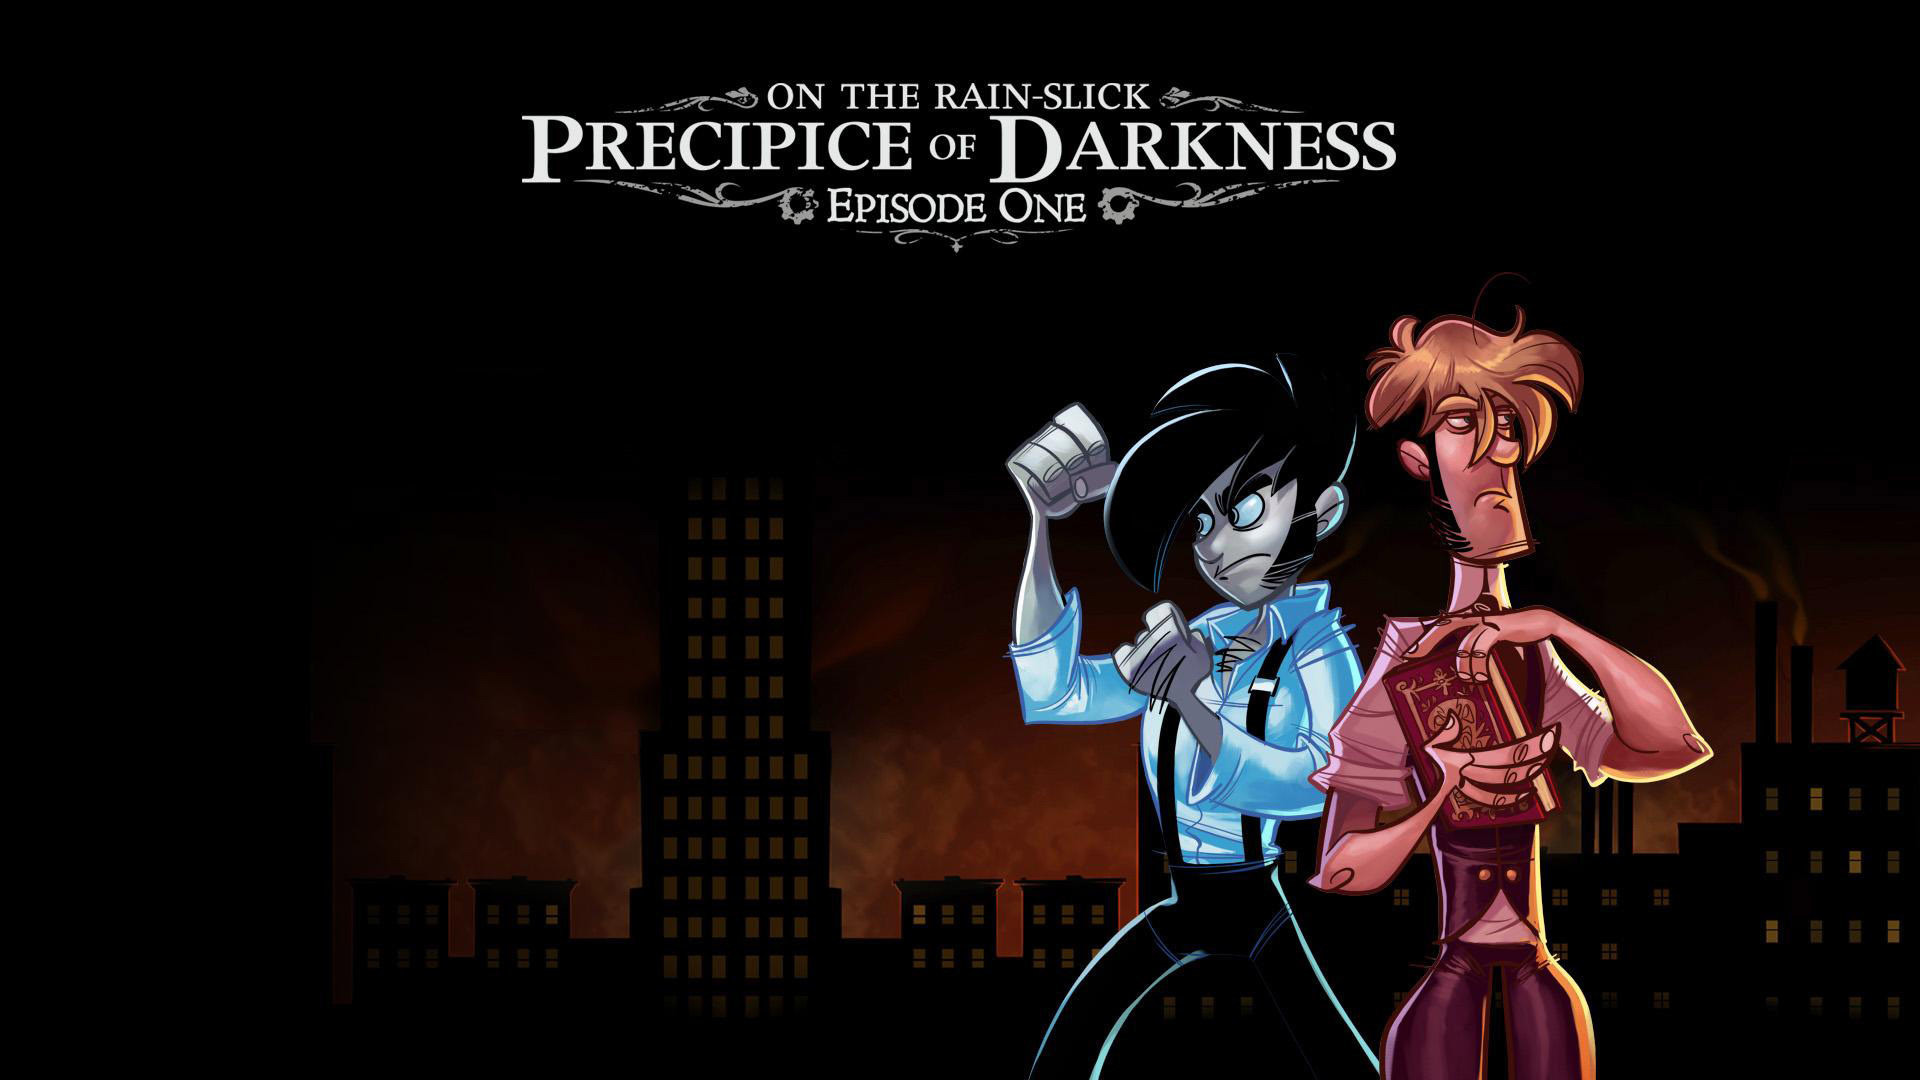 1920x1080 Penny Arcade Adventures: On the Rain-Slick Precipice of Dark HD Wallpaper